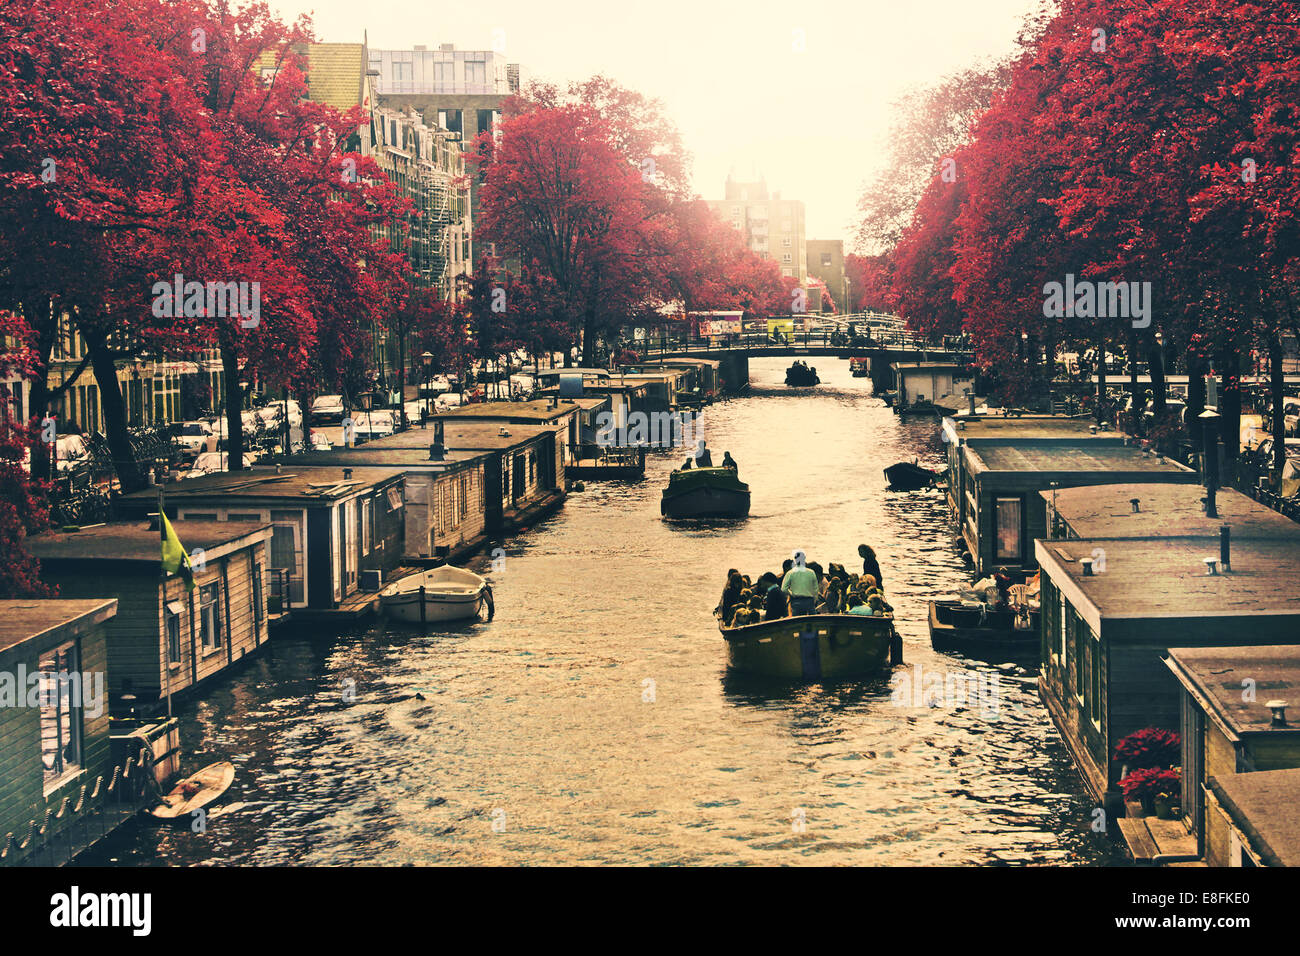 La Hollande, Amsterdam, Houseboats sur canal Photo Stock